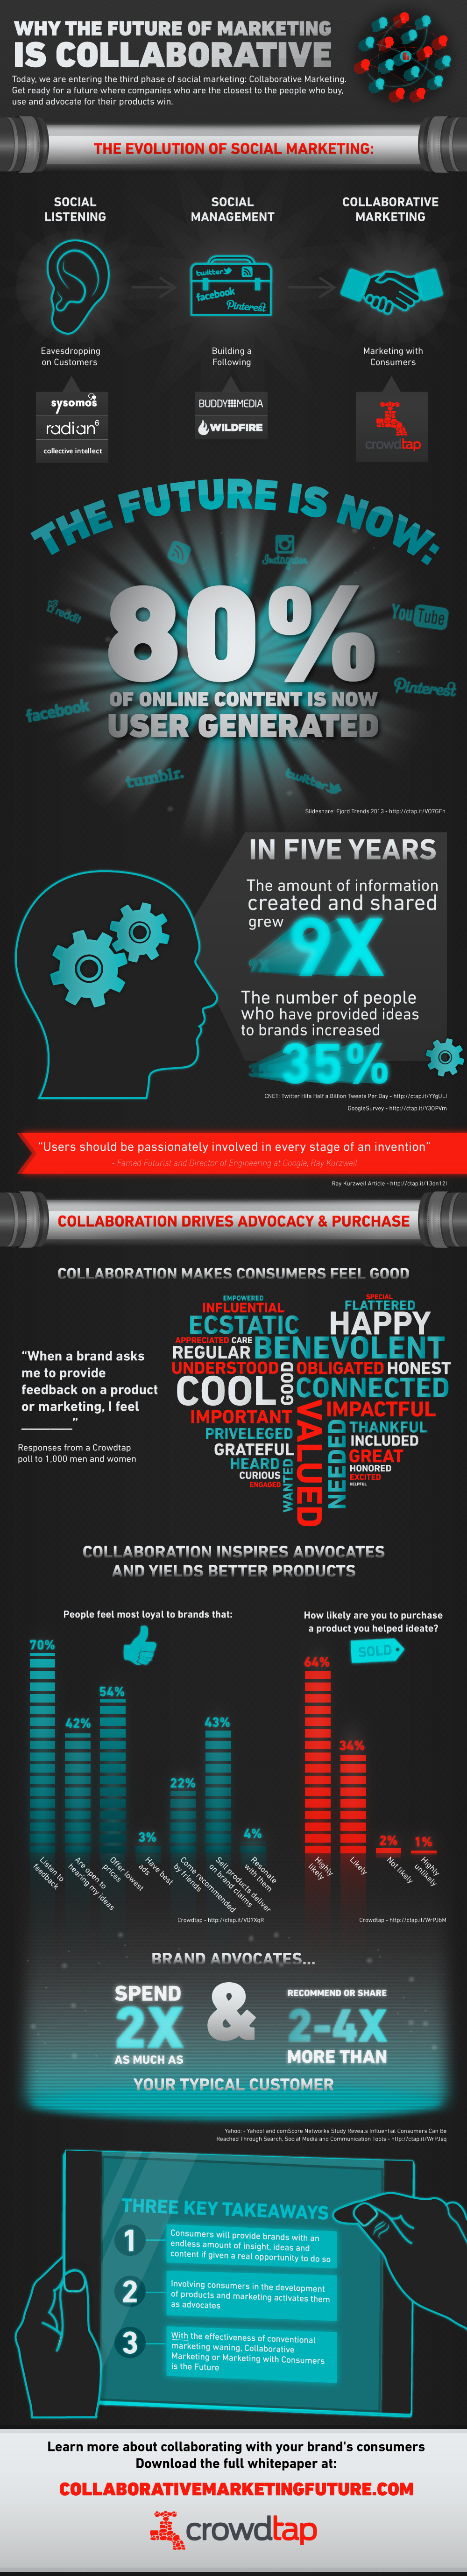 2013-04-03-The_Future_of_Marketing_Infographic_March_20131.jpg